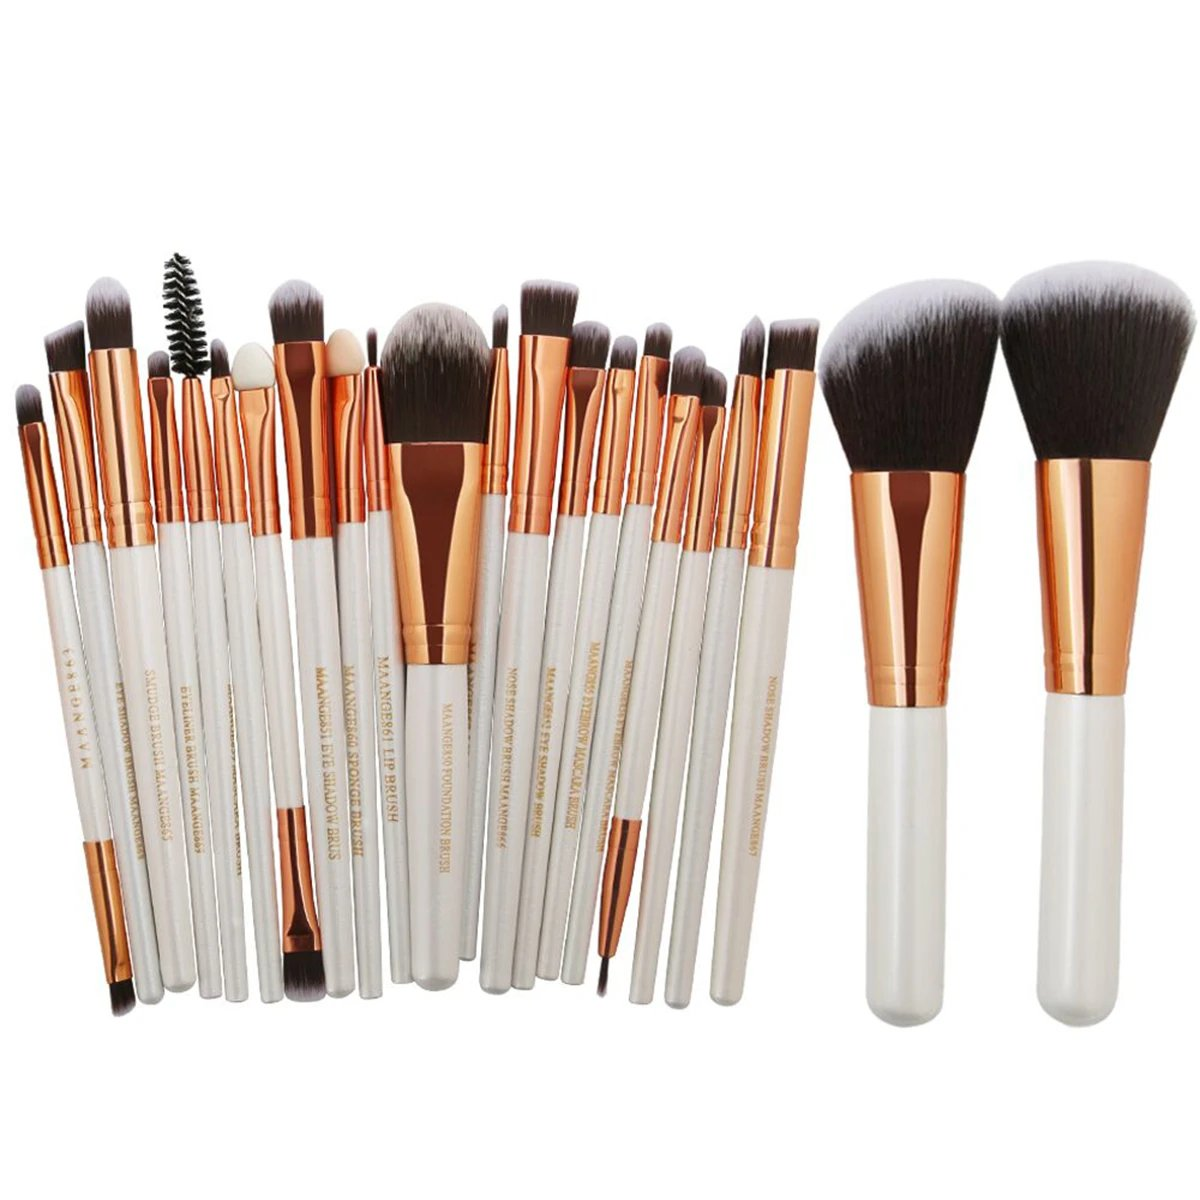 Makeup Brushes Set for Blush Eye Shadow and Lip Blend